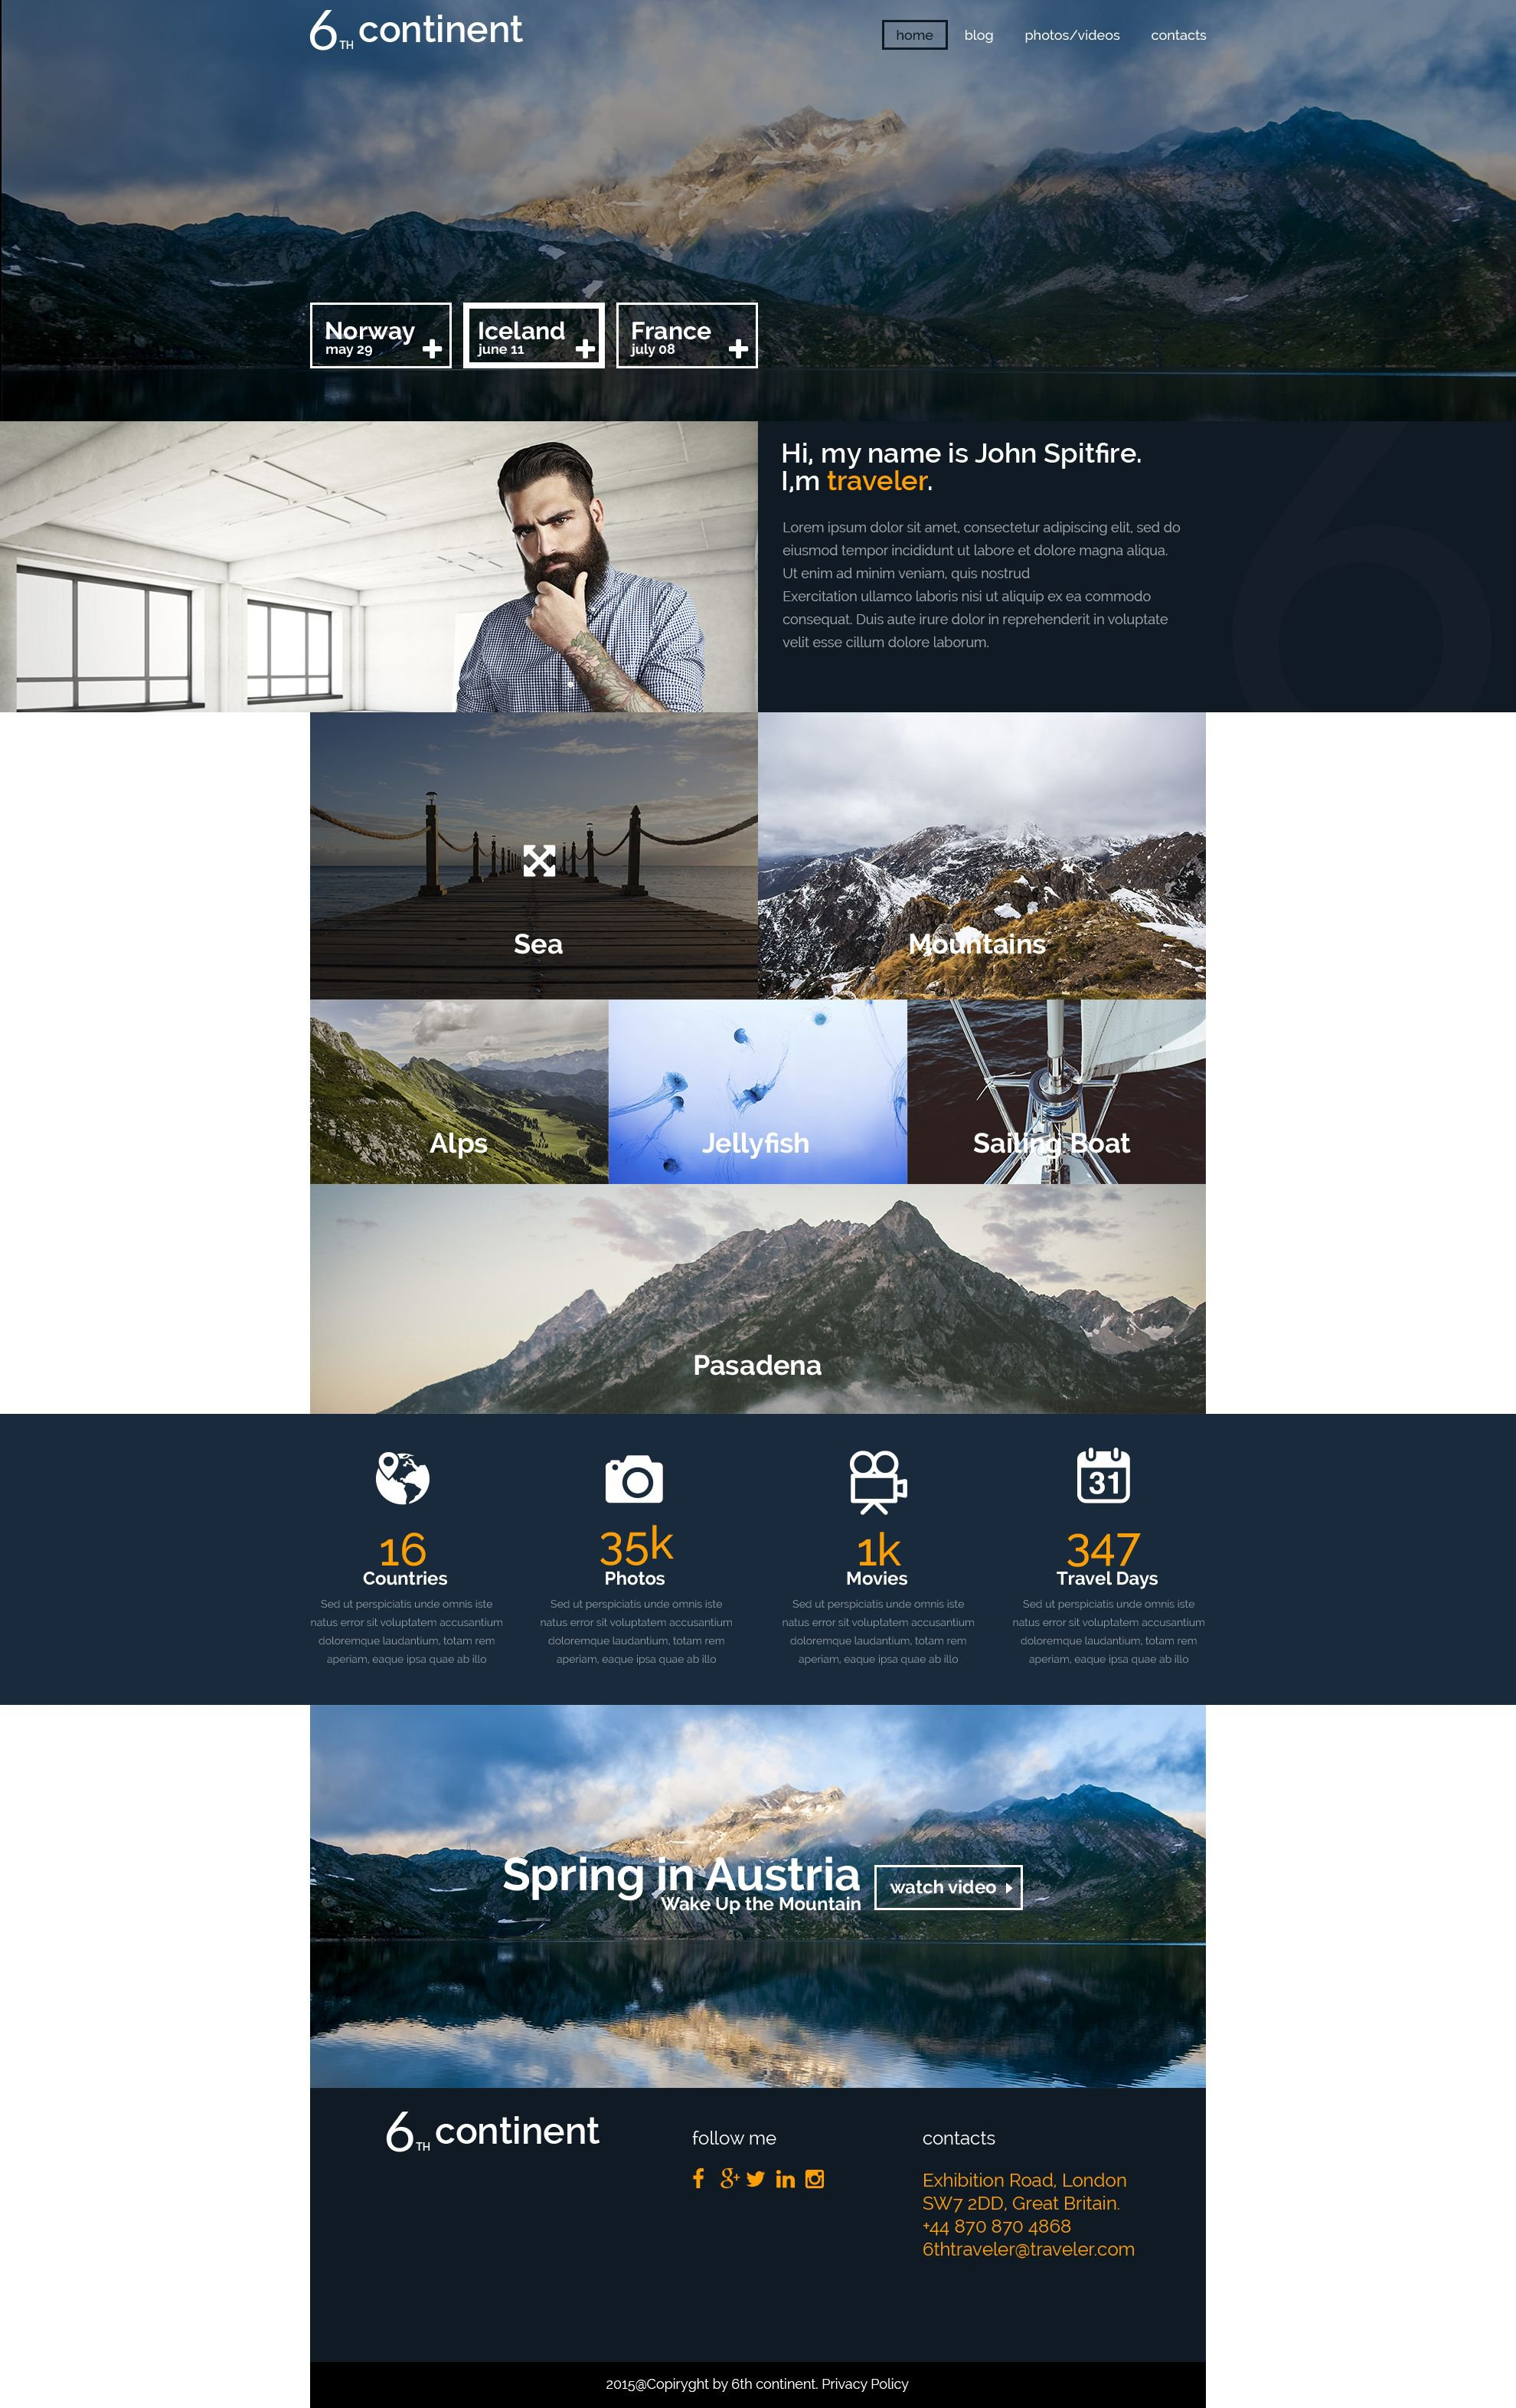 The 6 Continent WordPress Design 53764, one of the best WordPress themes of its kind (travel, most popular), also known as 6 continent WordPress template, travel blog agency WordPress template, compass WordPress template, tour country WordPress template, resort WordPress template, spa WordPress template, flight hotel WordPress template, car WordPress template, rental WordPress template, cruise WordPress template, sights WordPress template, reservation WordPress template, location WordPress template, authorization WordPress template, ticket WordPress template, guide WordPress template, beach WordPress template, sea WordPress template, relaxation WordPress template, recreation WordPress template, impression WordPress template, air WordPress template, liner WordPress template, traveling WordPress template, apartment WordPress template, vacation WordPress template, rest WordPress template, comfort WordPress template, destination WordPress template, explorat and related with 6 continent, travel blog agency, compass, tour country, resort, spa, flight hotel, car, rental, cruise, sights, reservation, location, authorization, ticket, guide, beach, sea, relaxation, recreation, impression, air, liner, traveling, apartment, vacation, rest, comfort, destination, explorat, etc.